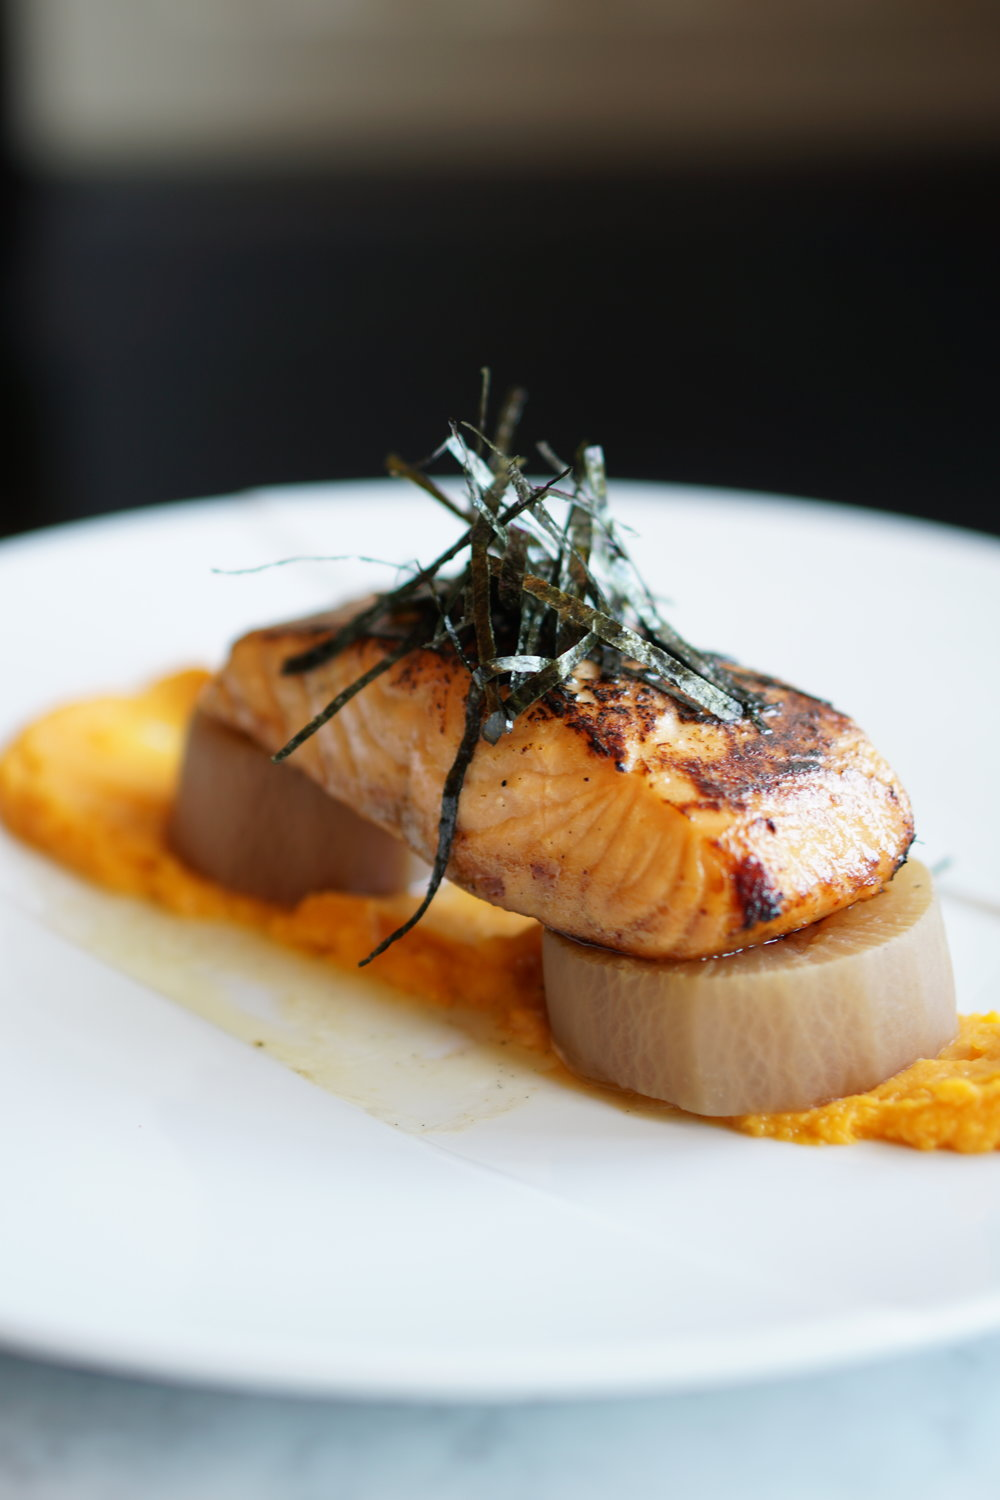 Vanilla miso salmon, daikon, sweet potato puree, nori